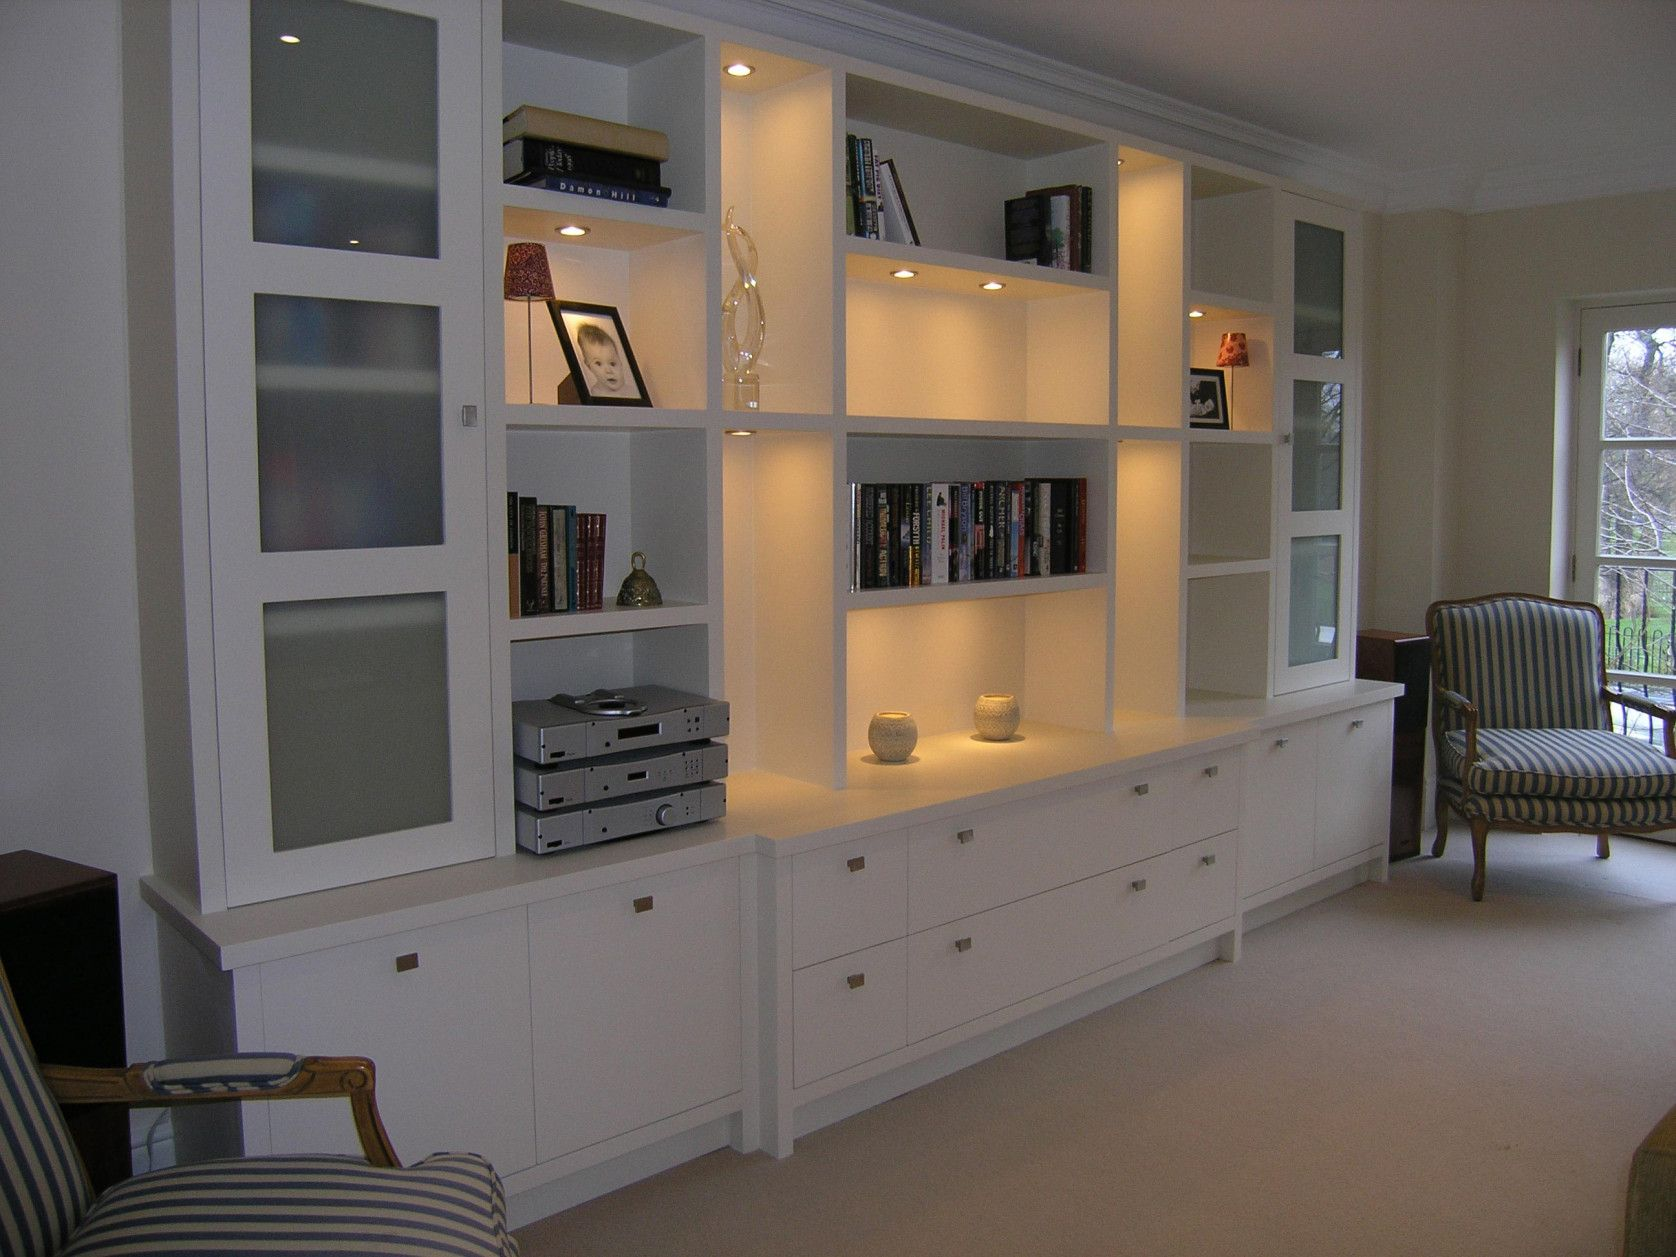 99 Living Room Display Cabinets Designs Kitchen Is